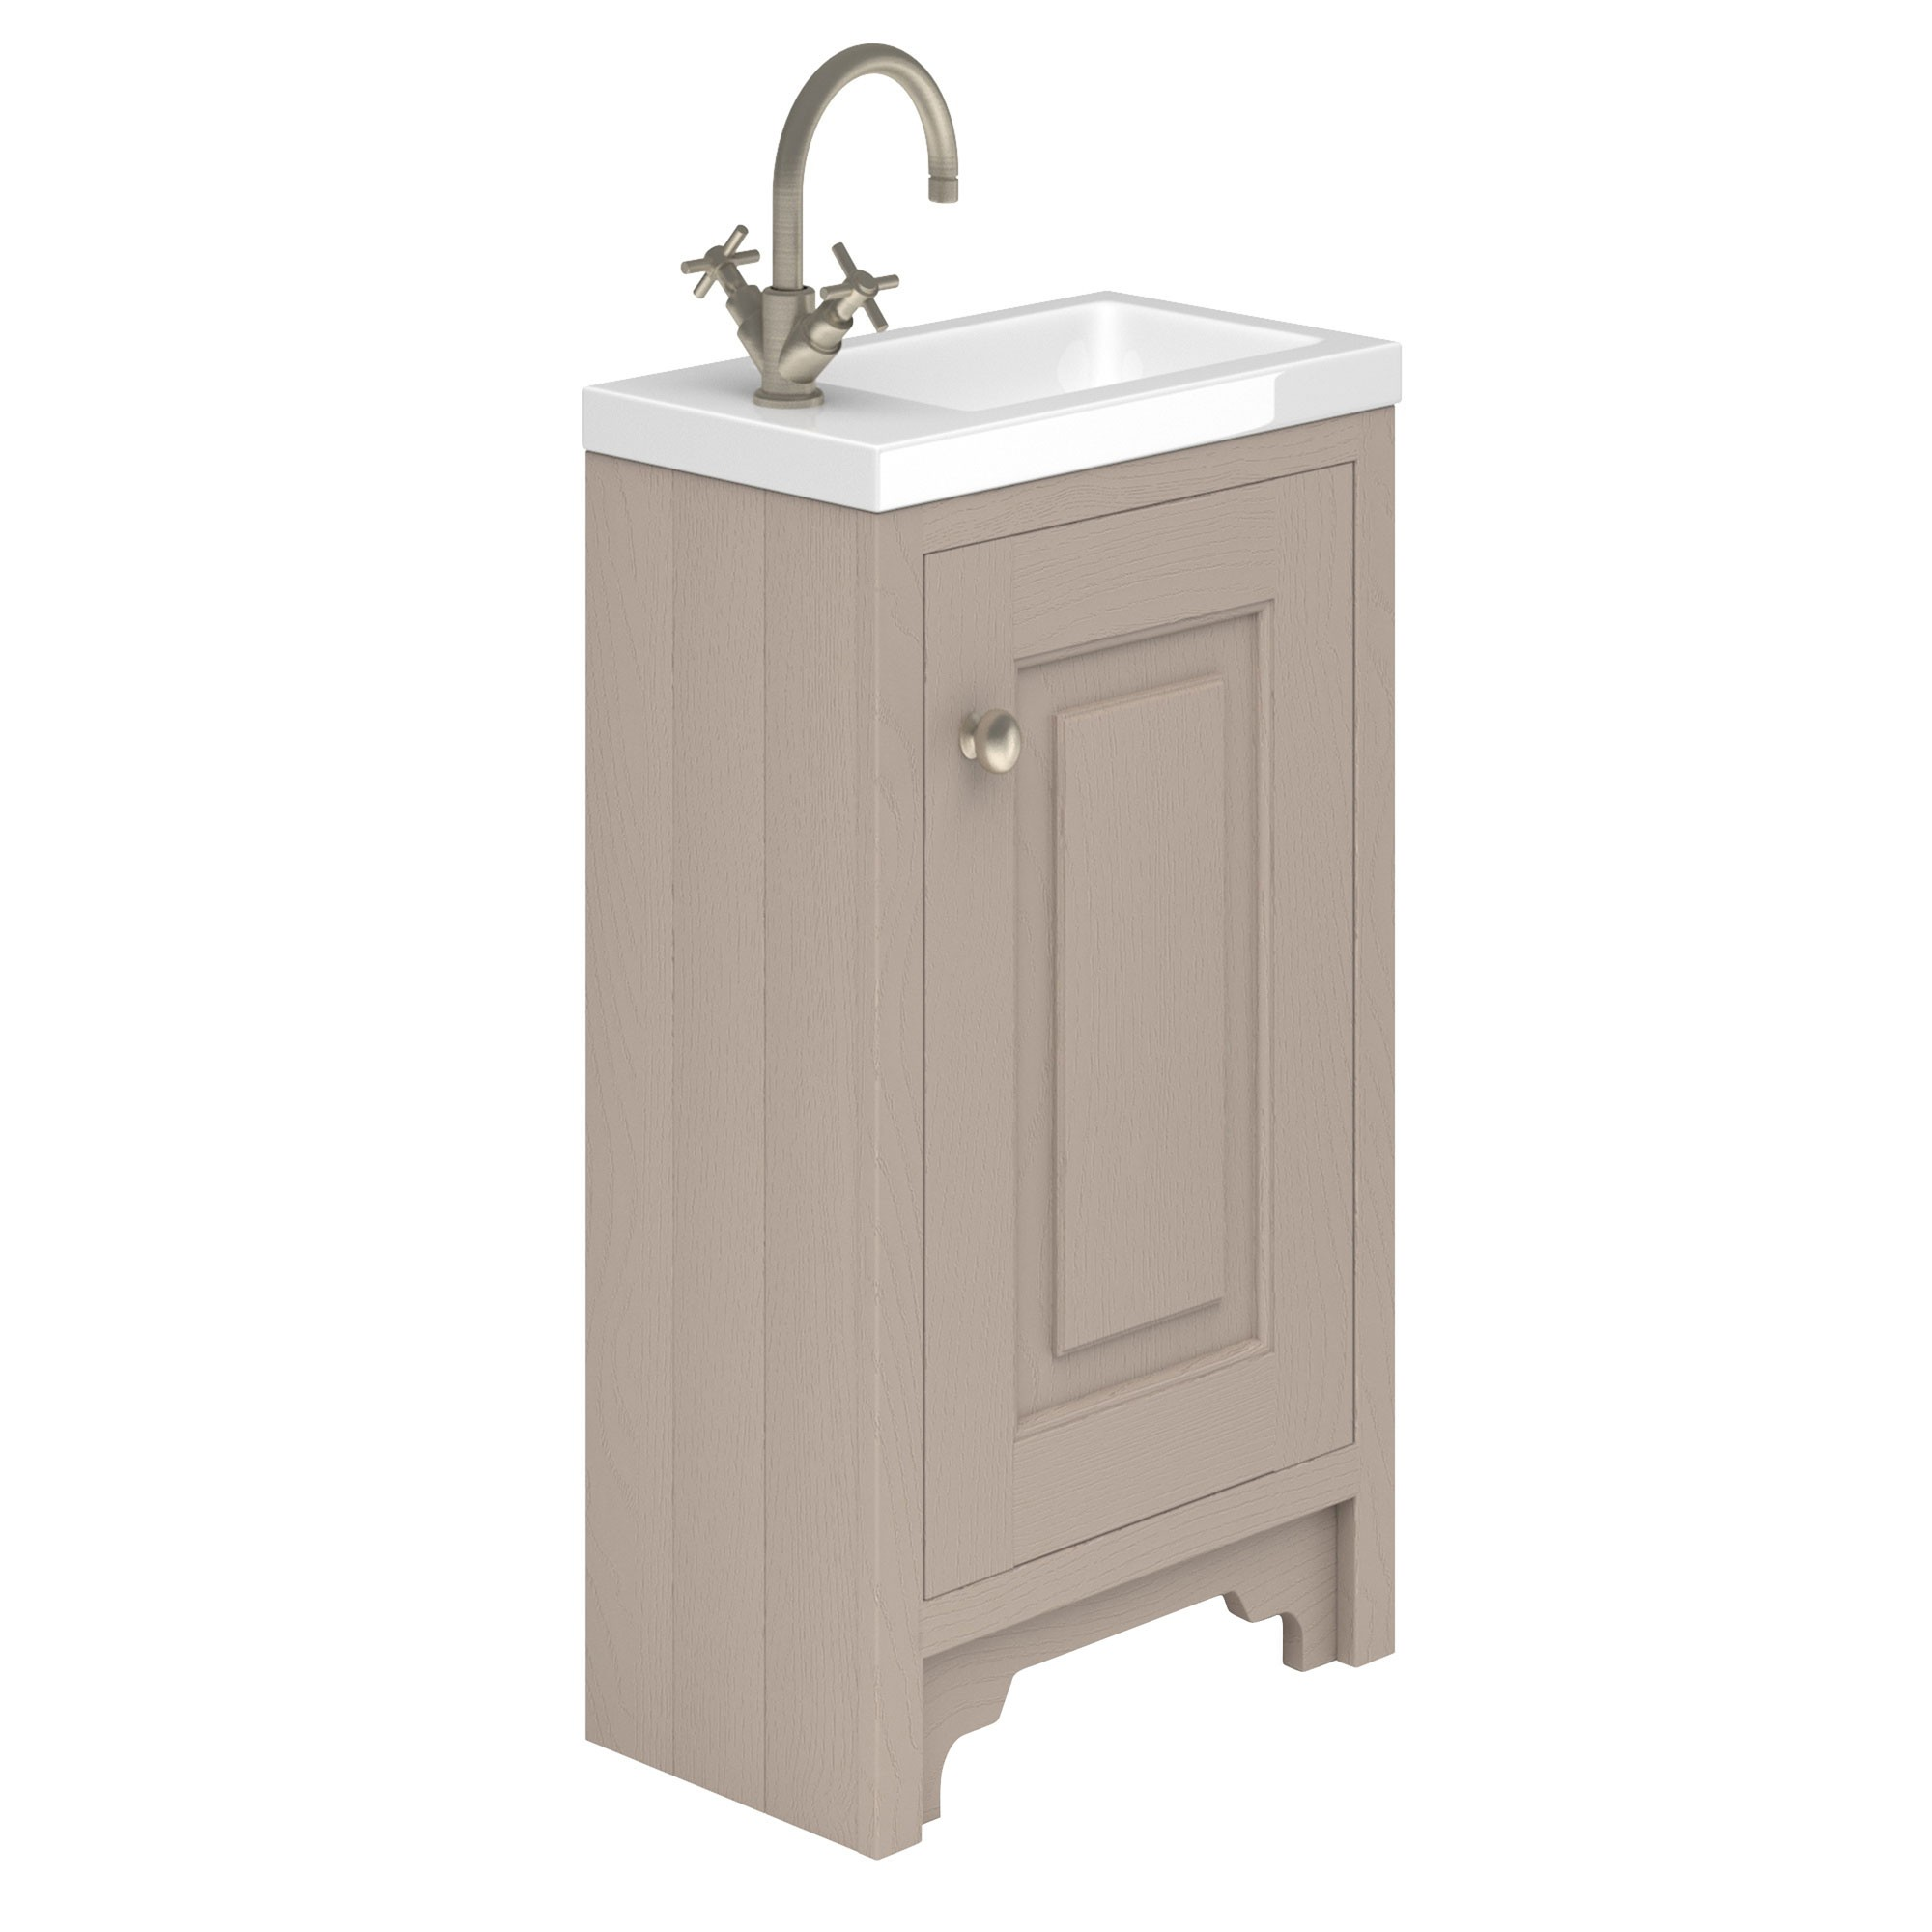 Best Off Slimline Cloakroom Oak Vanity Unit With Basin Bathroom Inspire cloakroom vanity unit